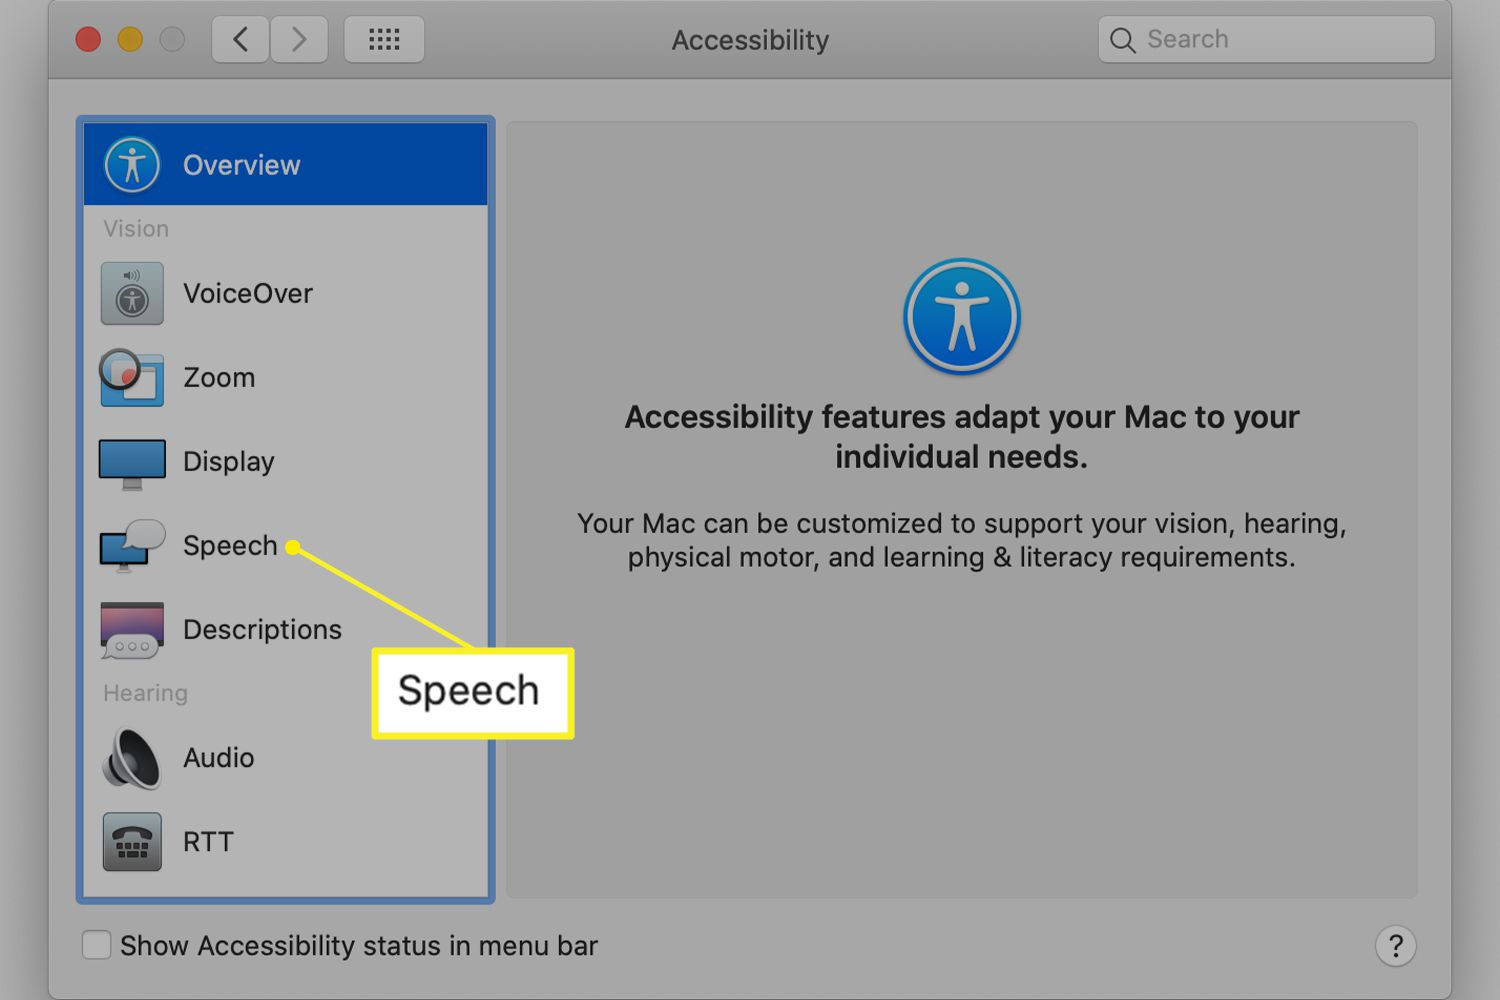 Accessibility preferences with Speech highlighted